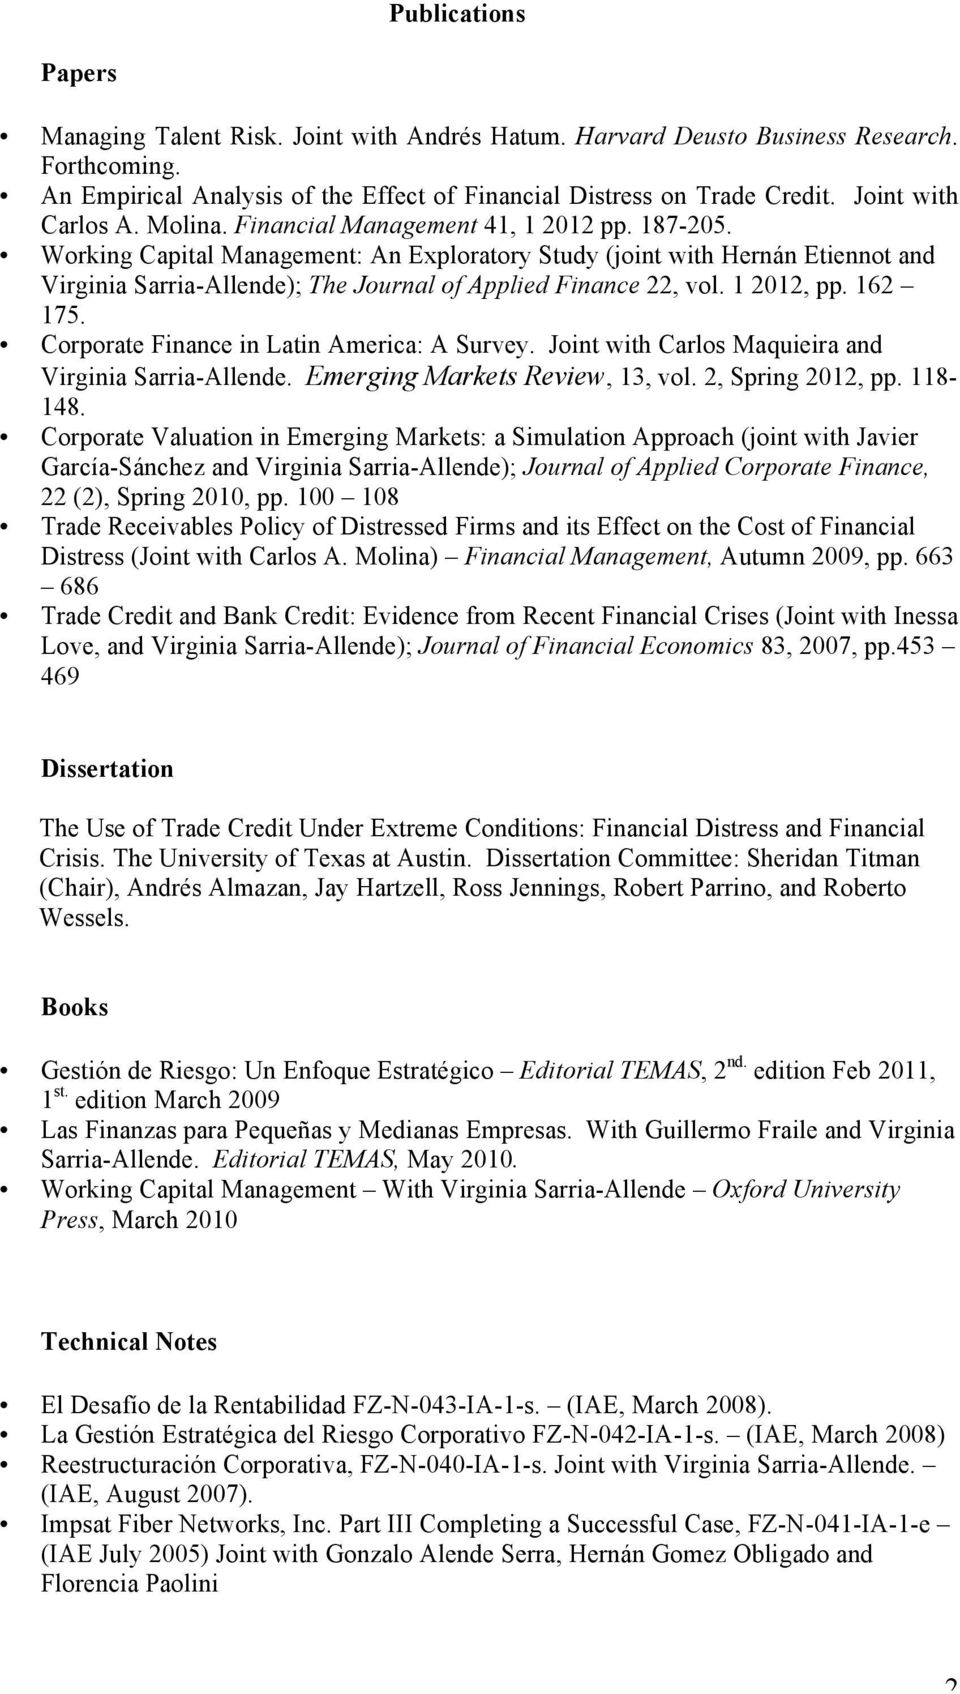 Working Capital Management: An Exploratory Study (joint with Hernán Etiennot and Virginia Sarria-Allende); The Journal of Applied Finance 22, vol. 1 2012, pp. 162 175.